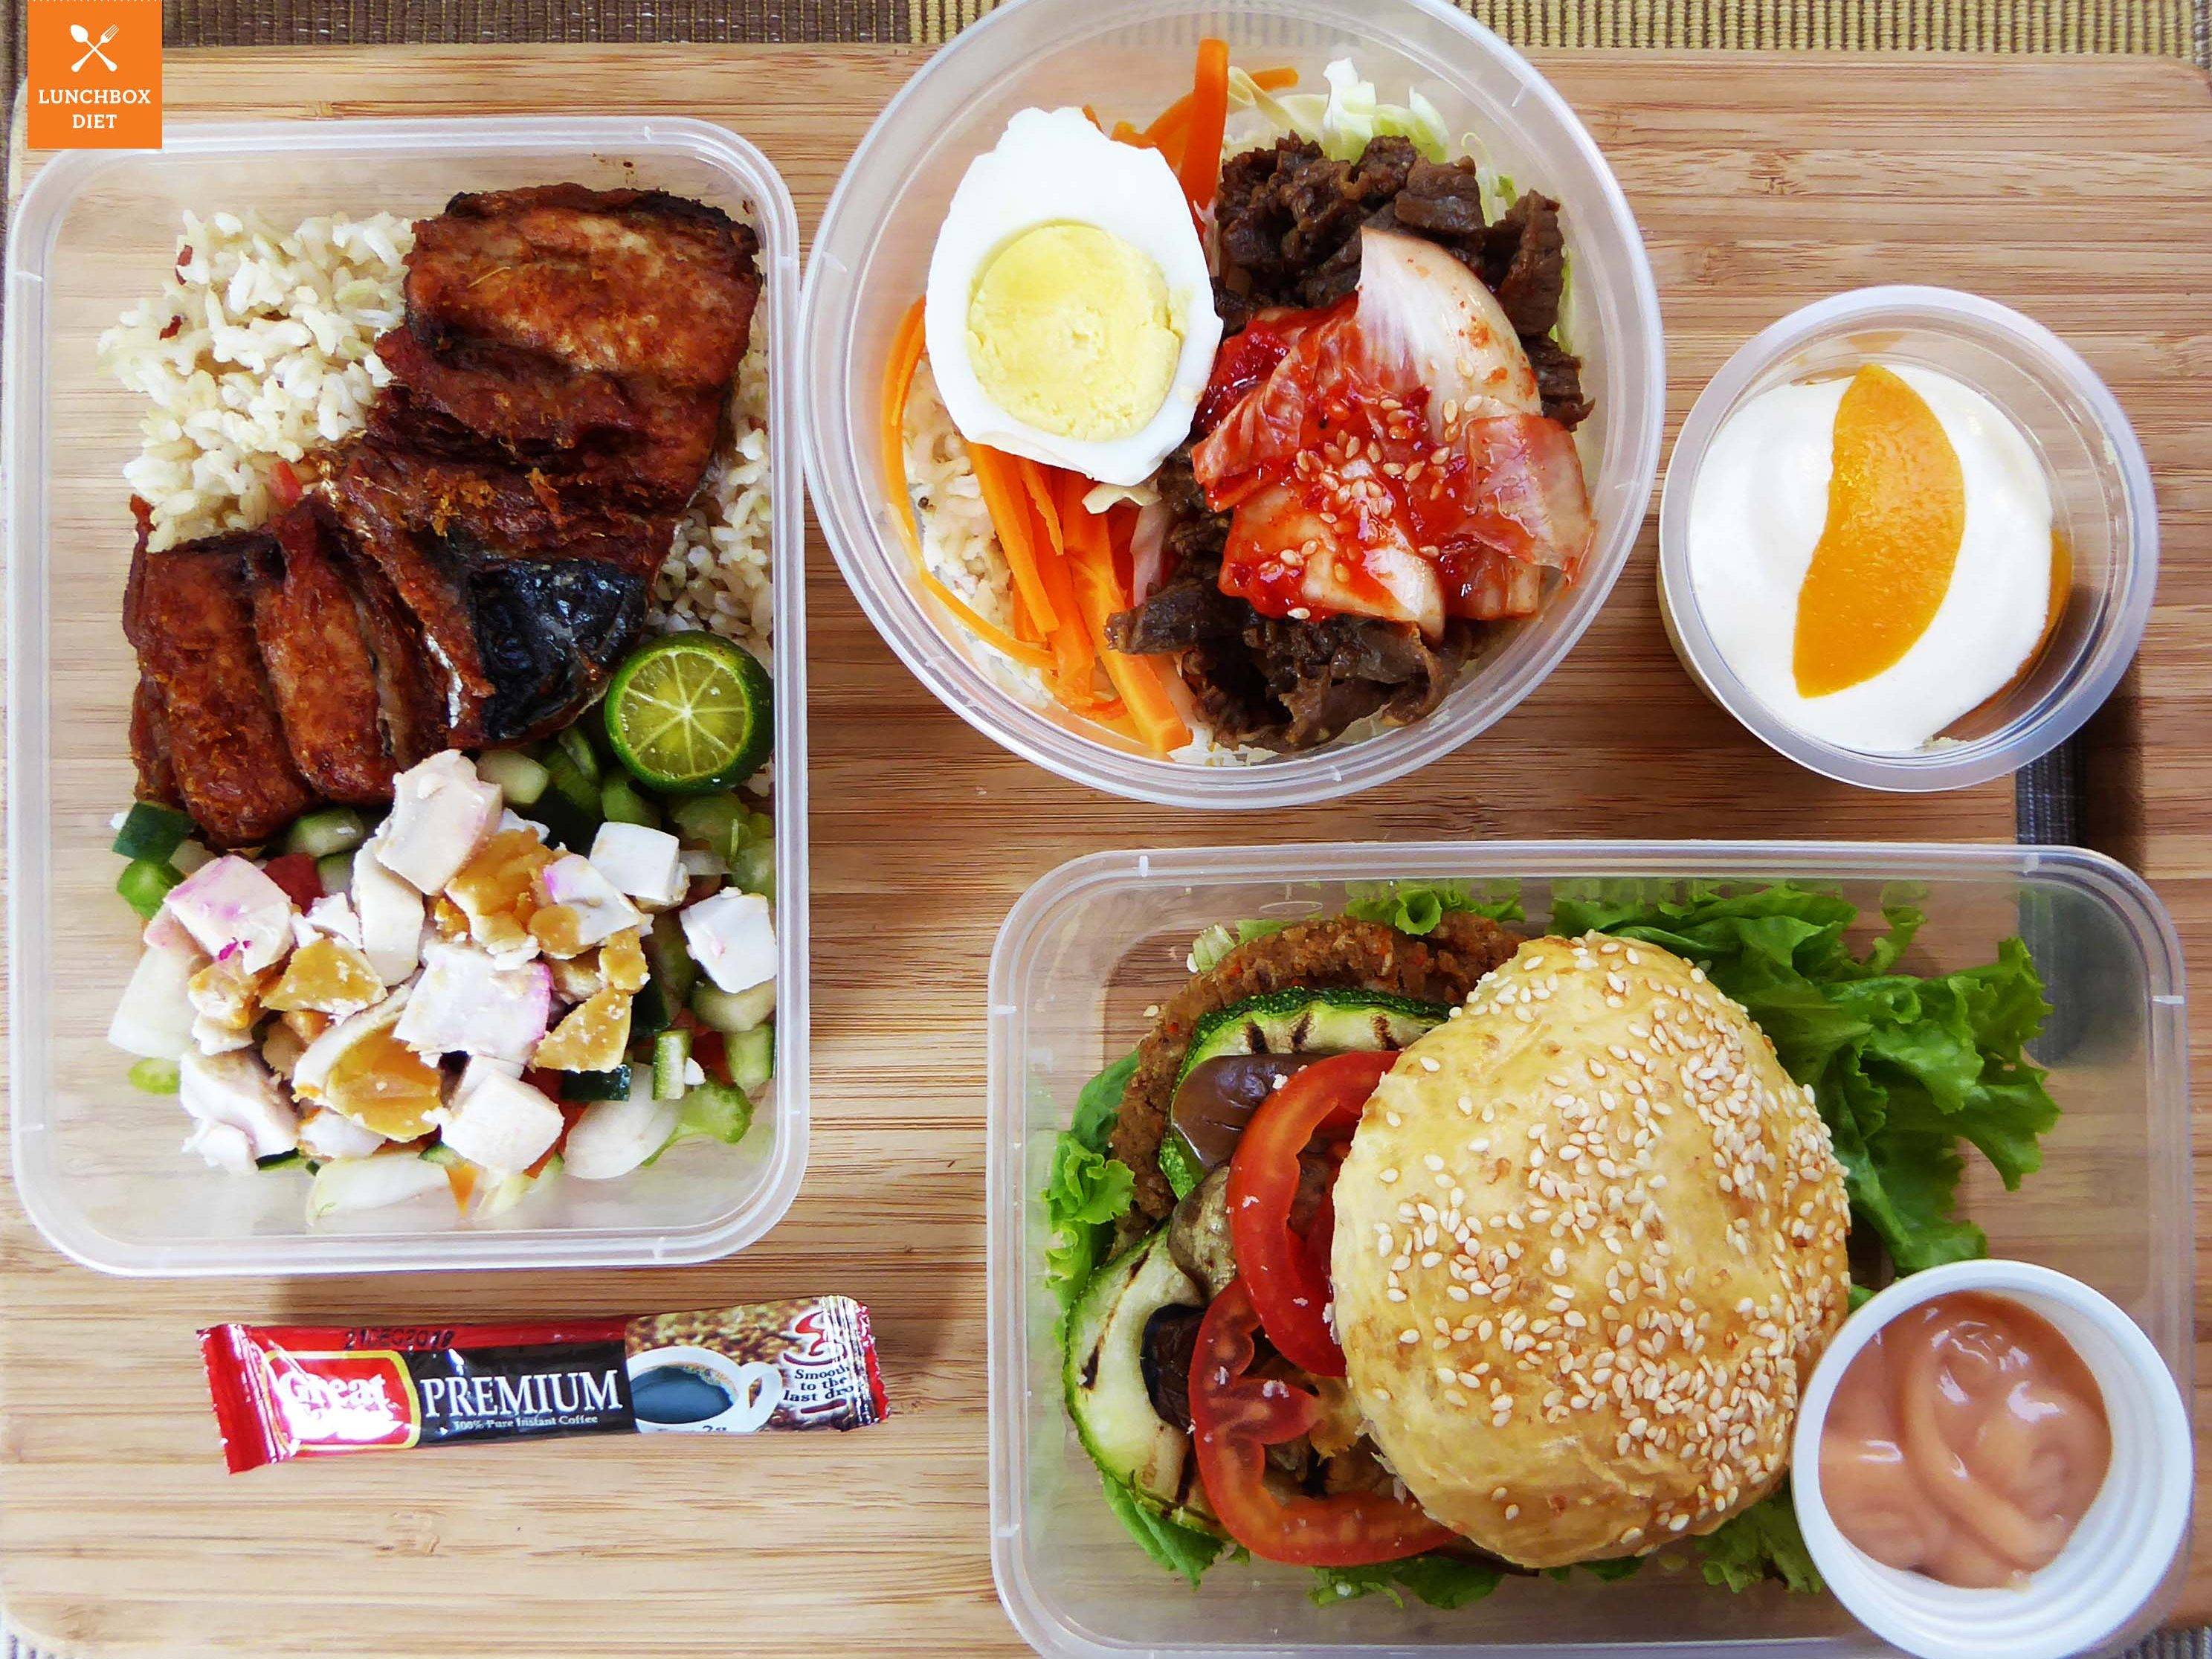 Diet Delivery Lunchbox Diet Serves Healthy Meals Right At